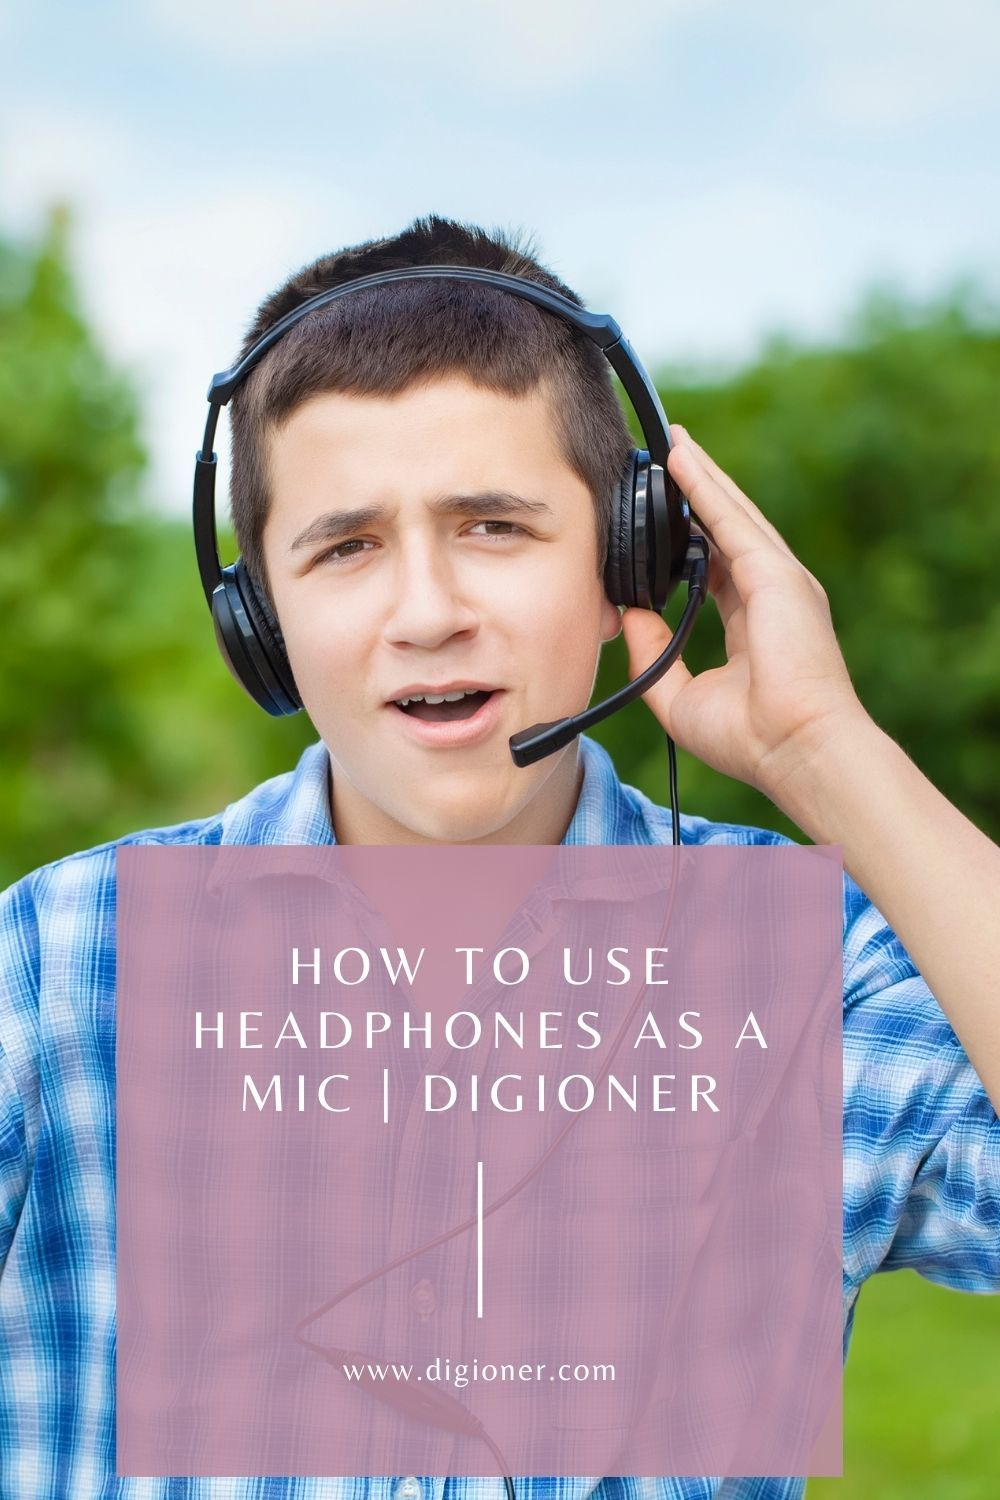 How To Use Headphones As A Mic Digioner In 2021 Headphones Mic Being Used